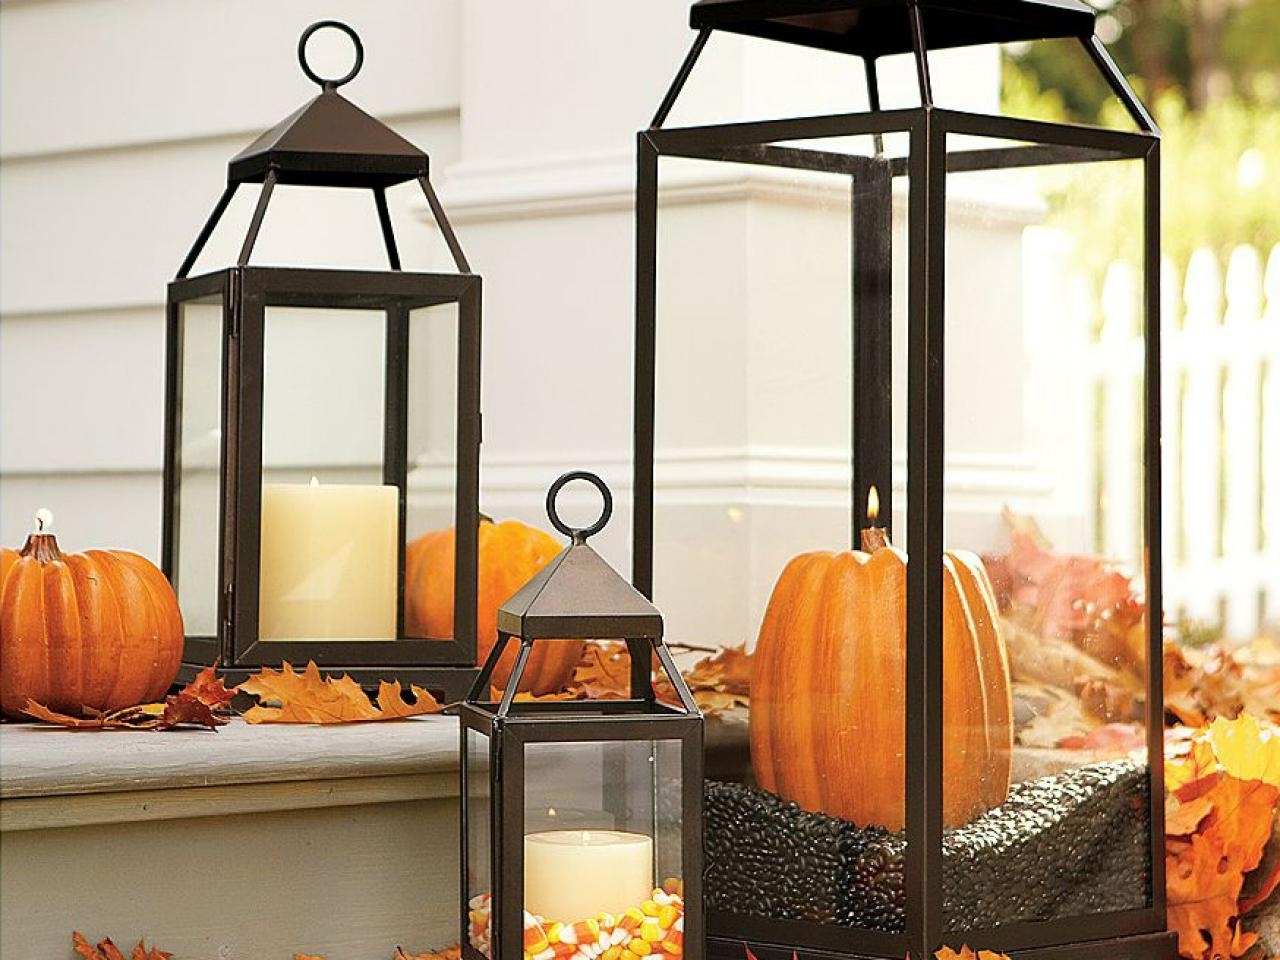 Fashionable Outdoor Oversized Lanterns With Regard To Fresh Big Outdoor Candle Lanterns #11356 (Gallery 16 of 20)